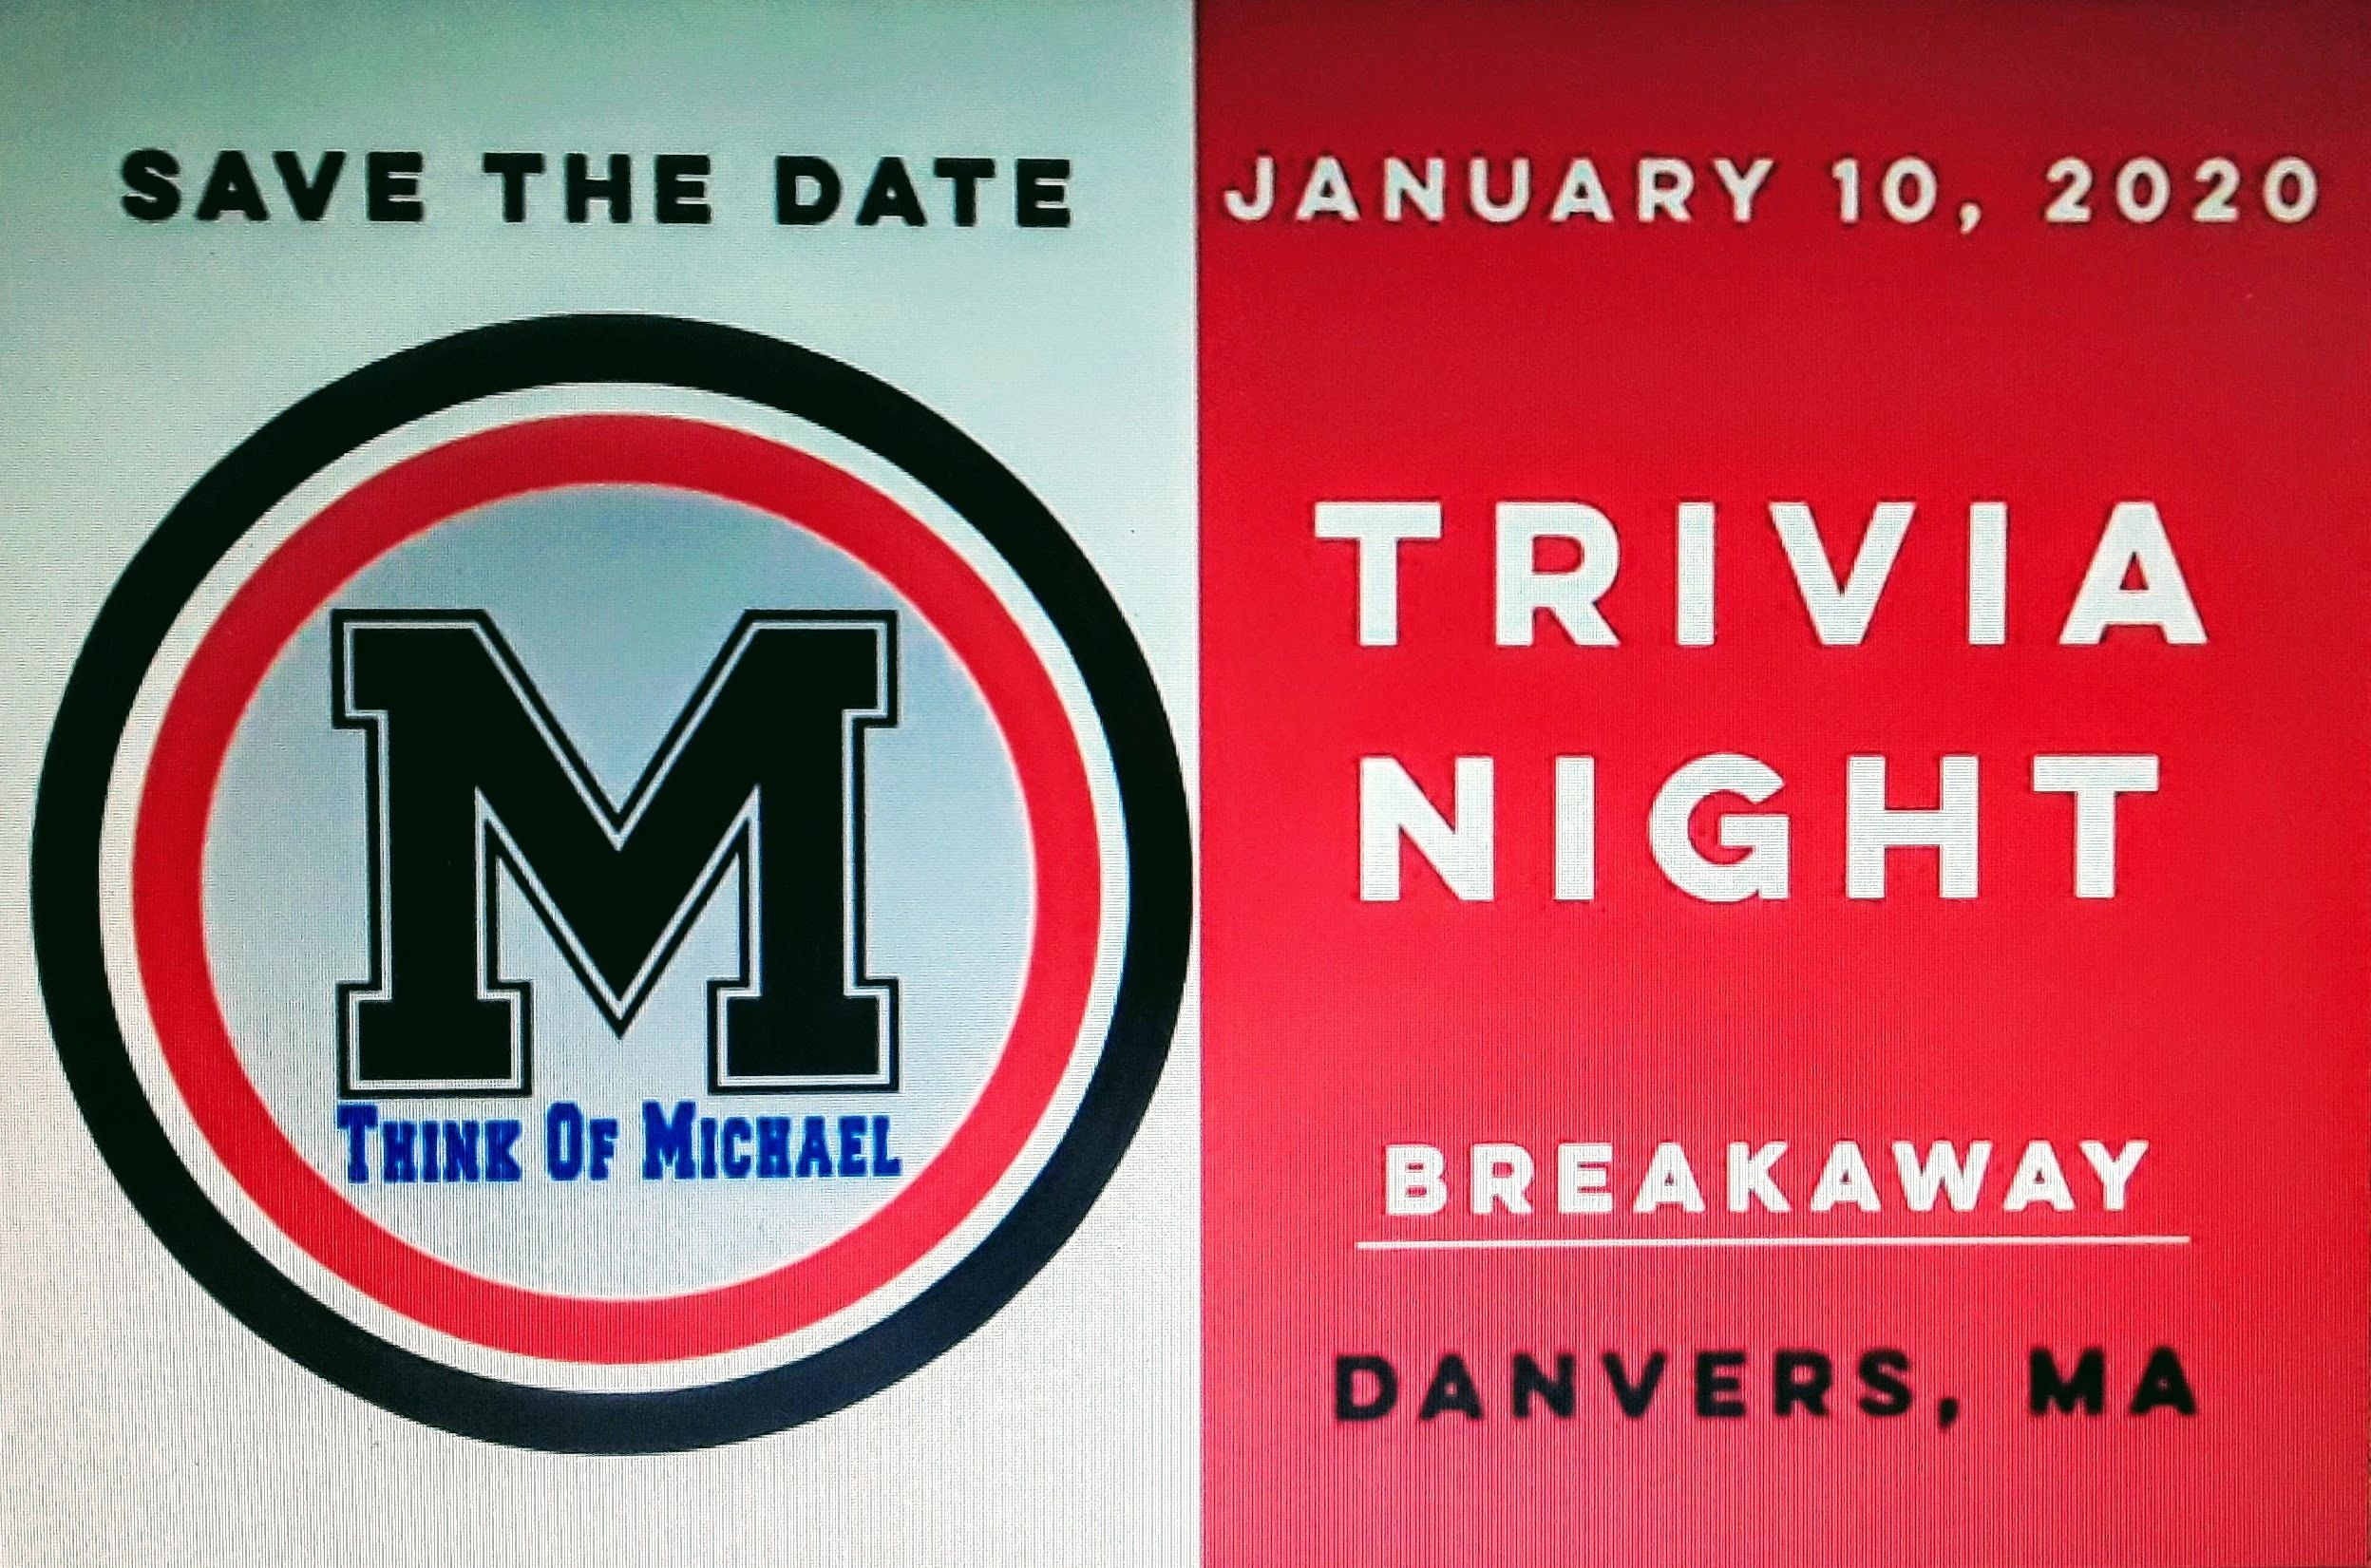 THINK OF MICHAEL TRIVIA NIGHT